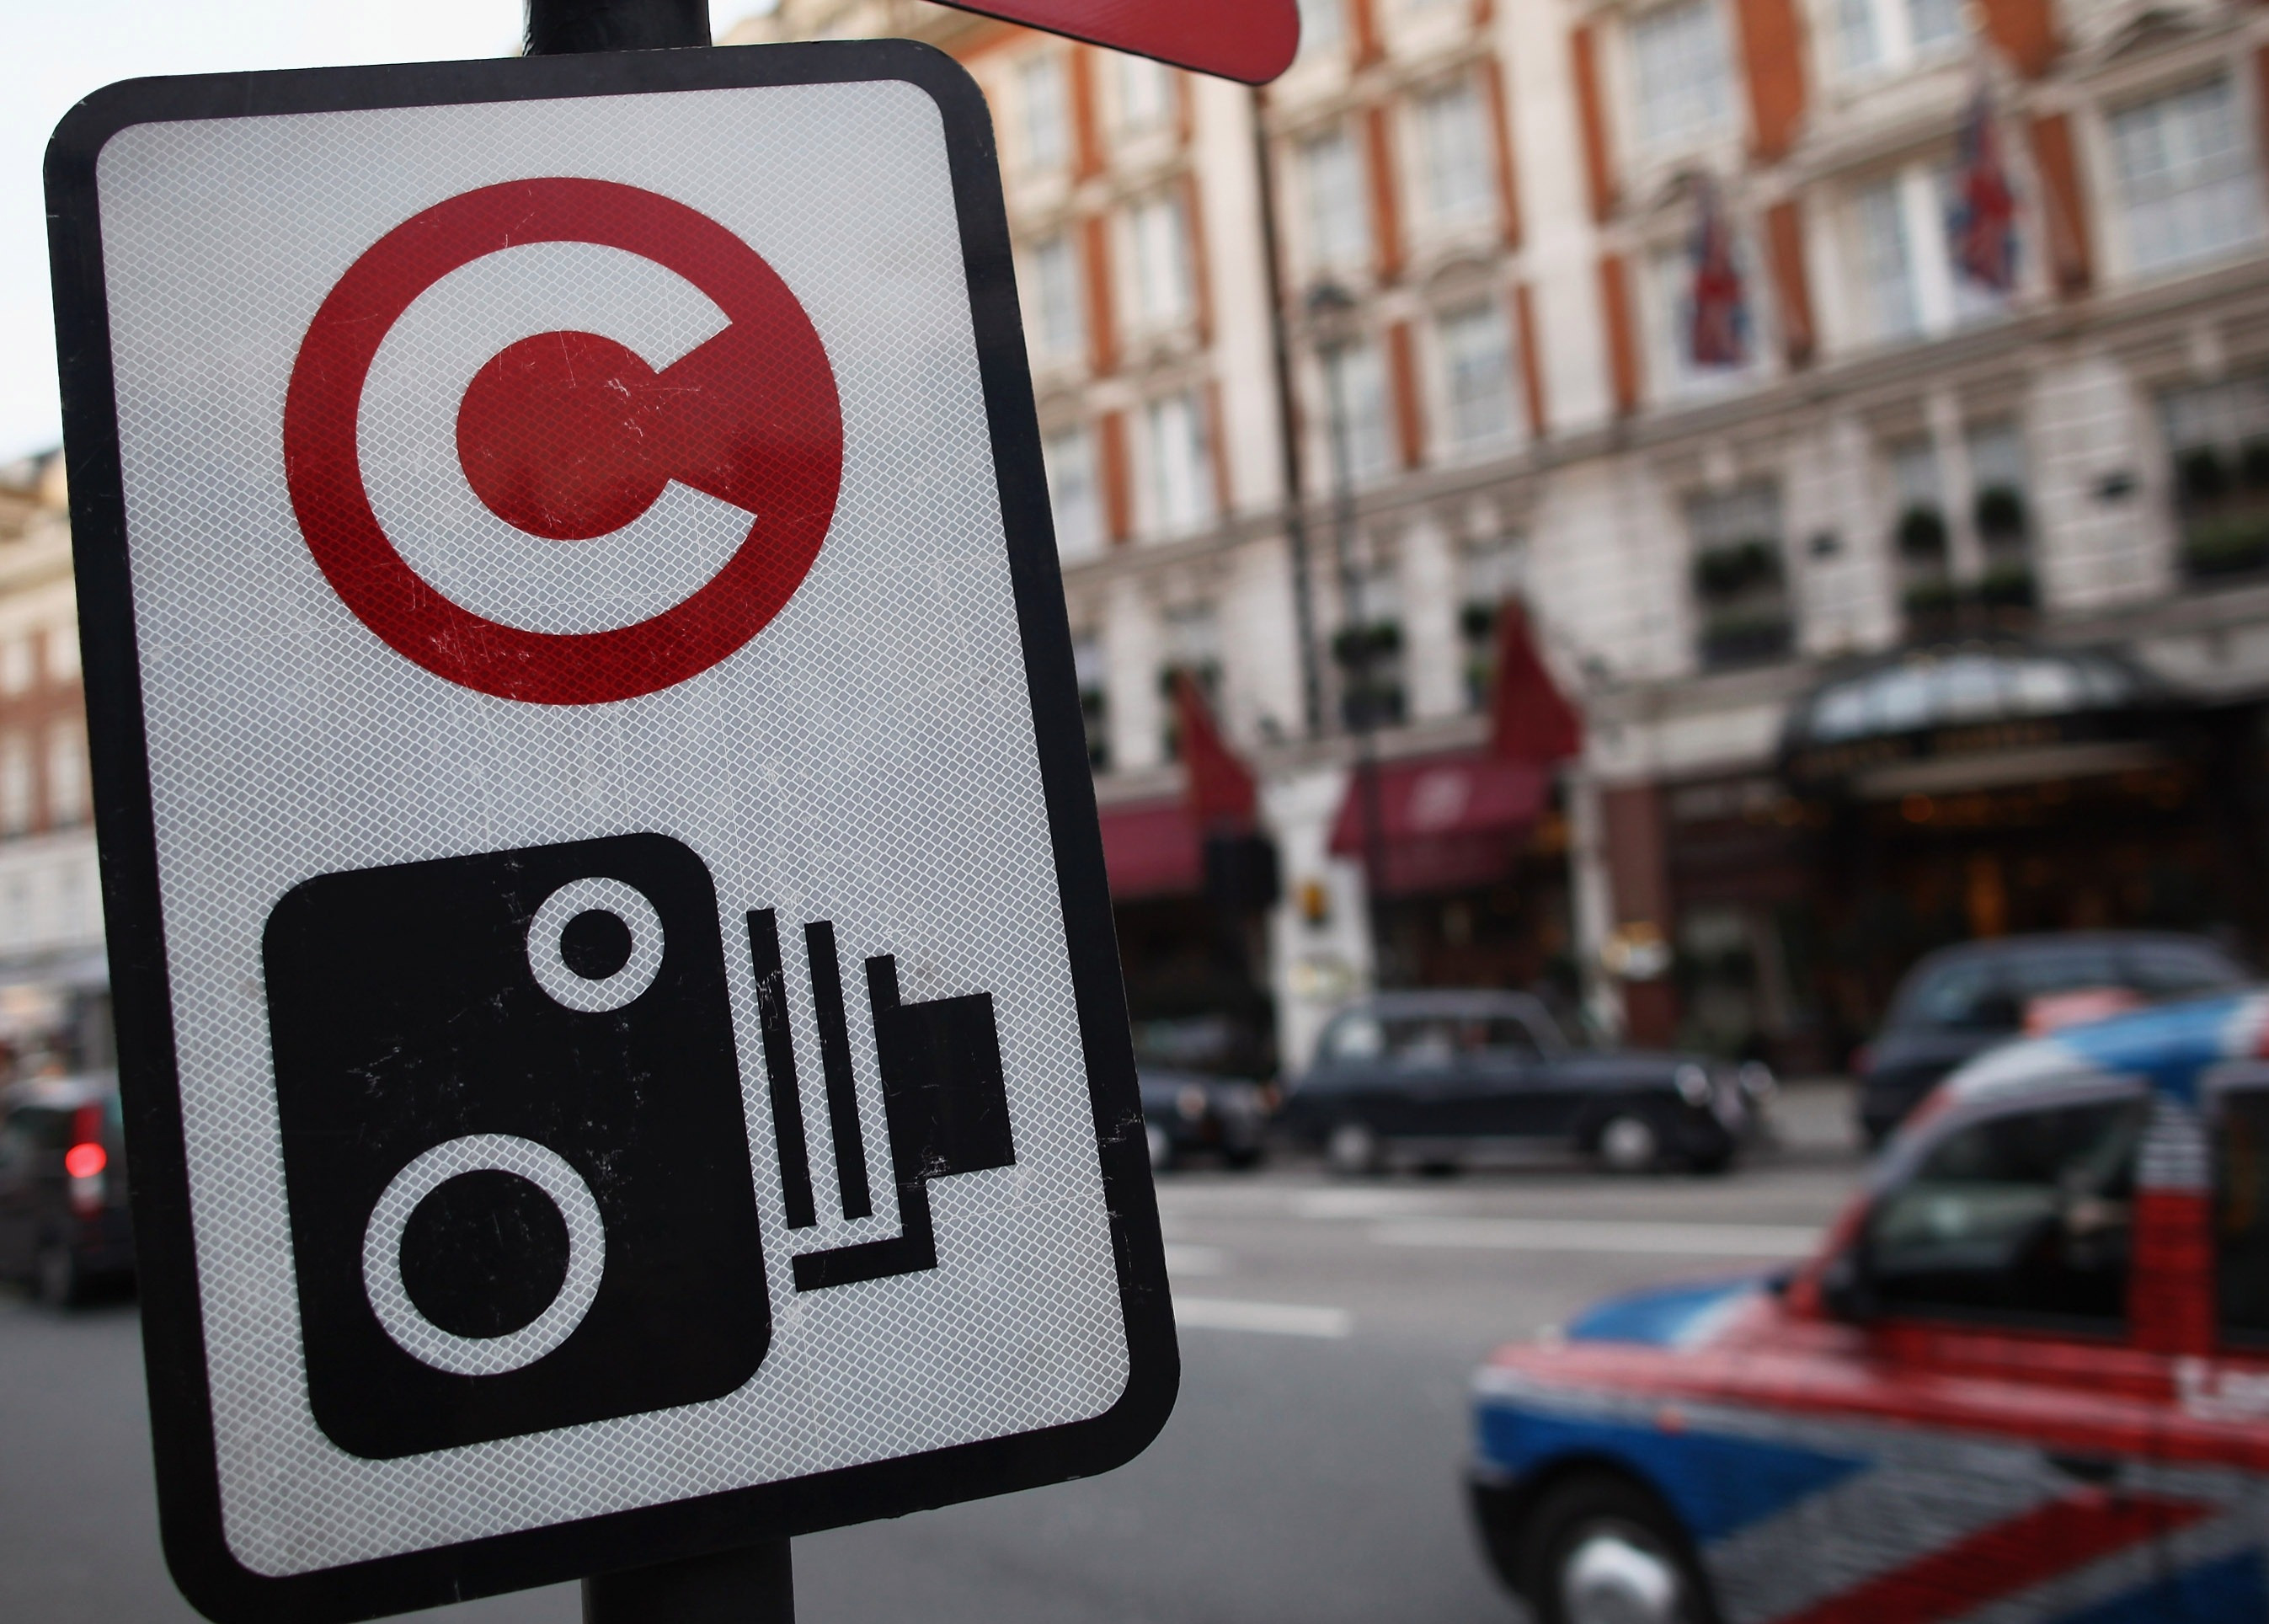 The Congestion charge applies seven days a week